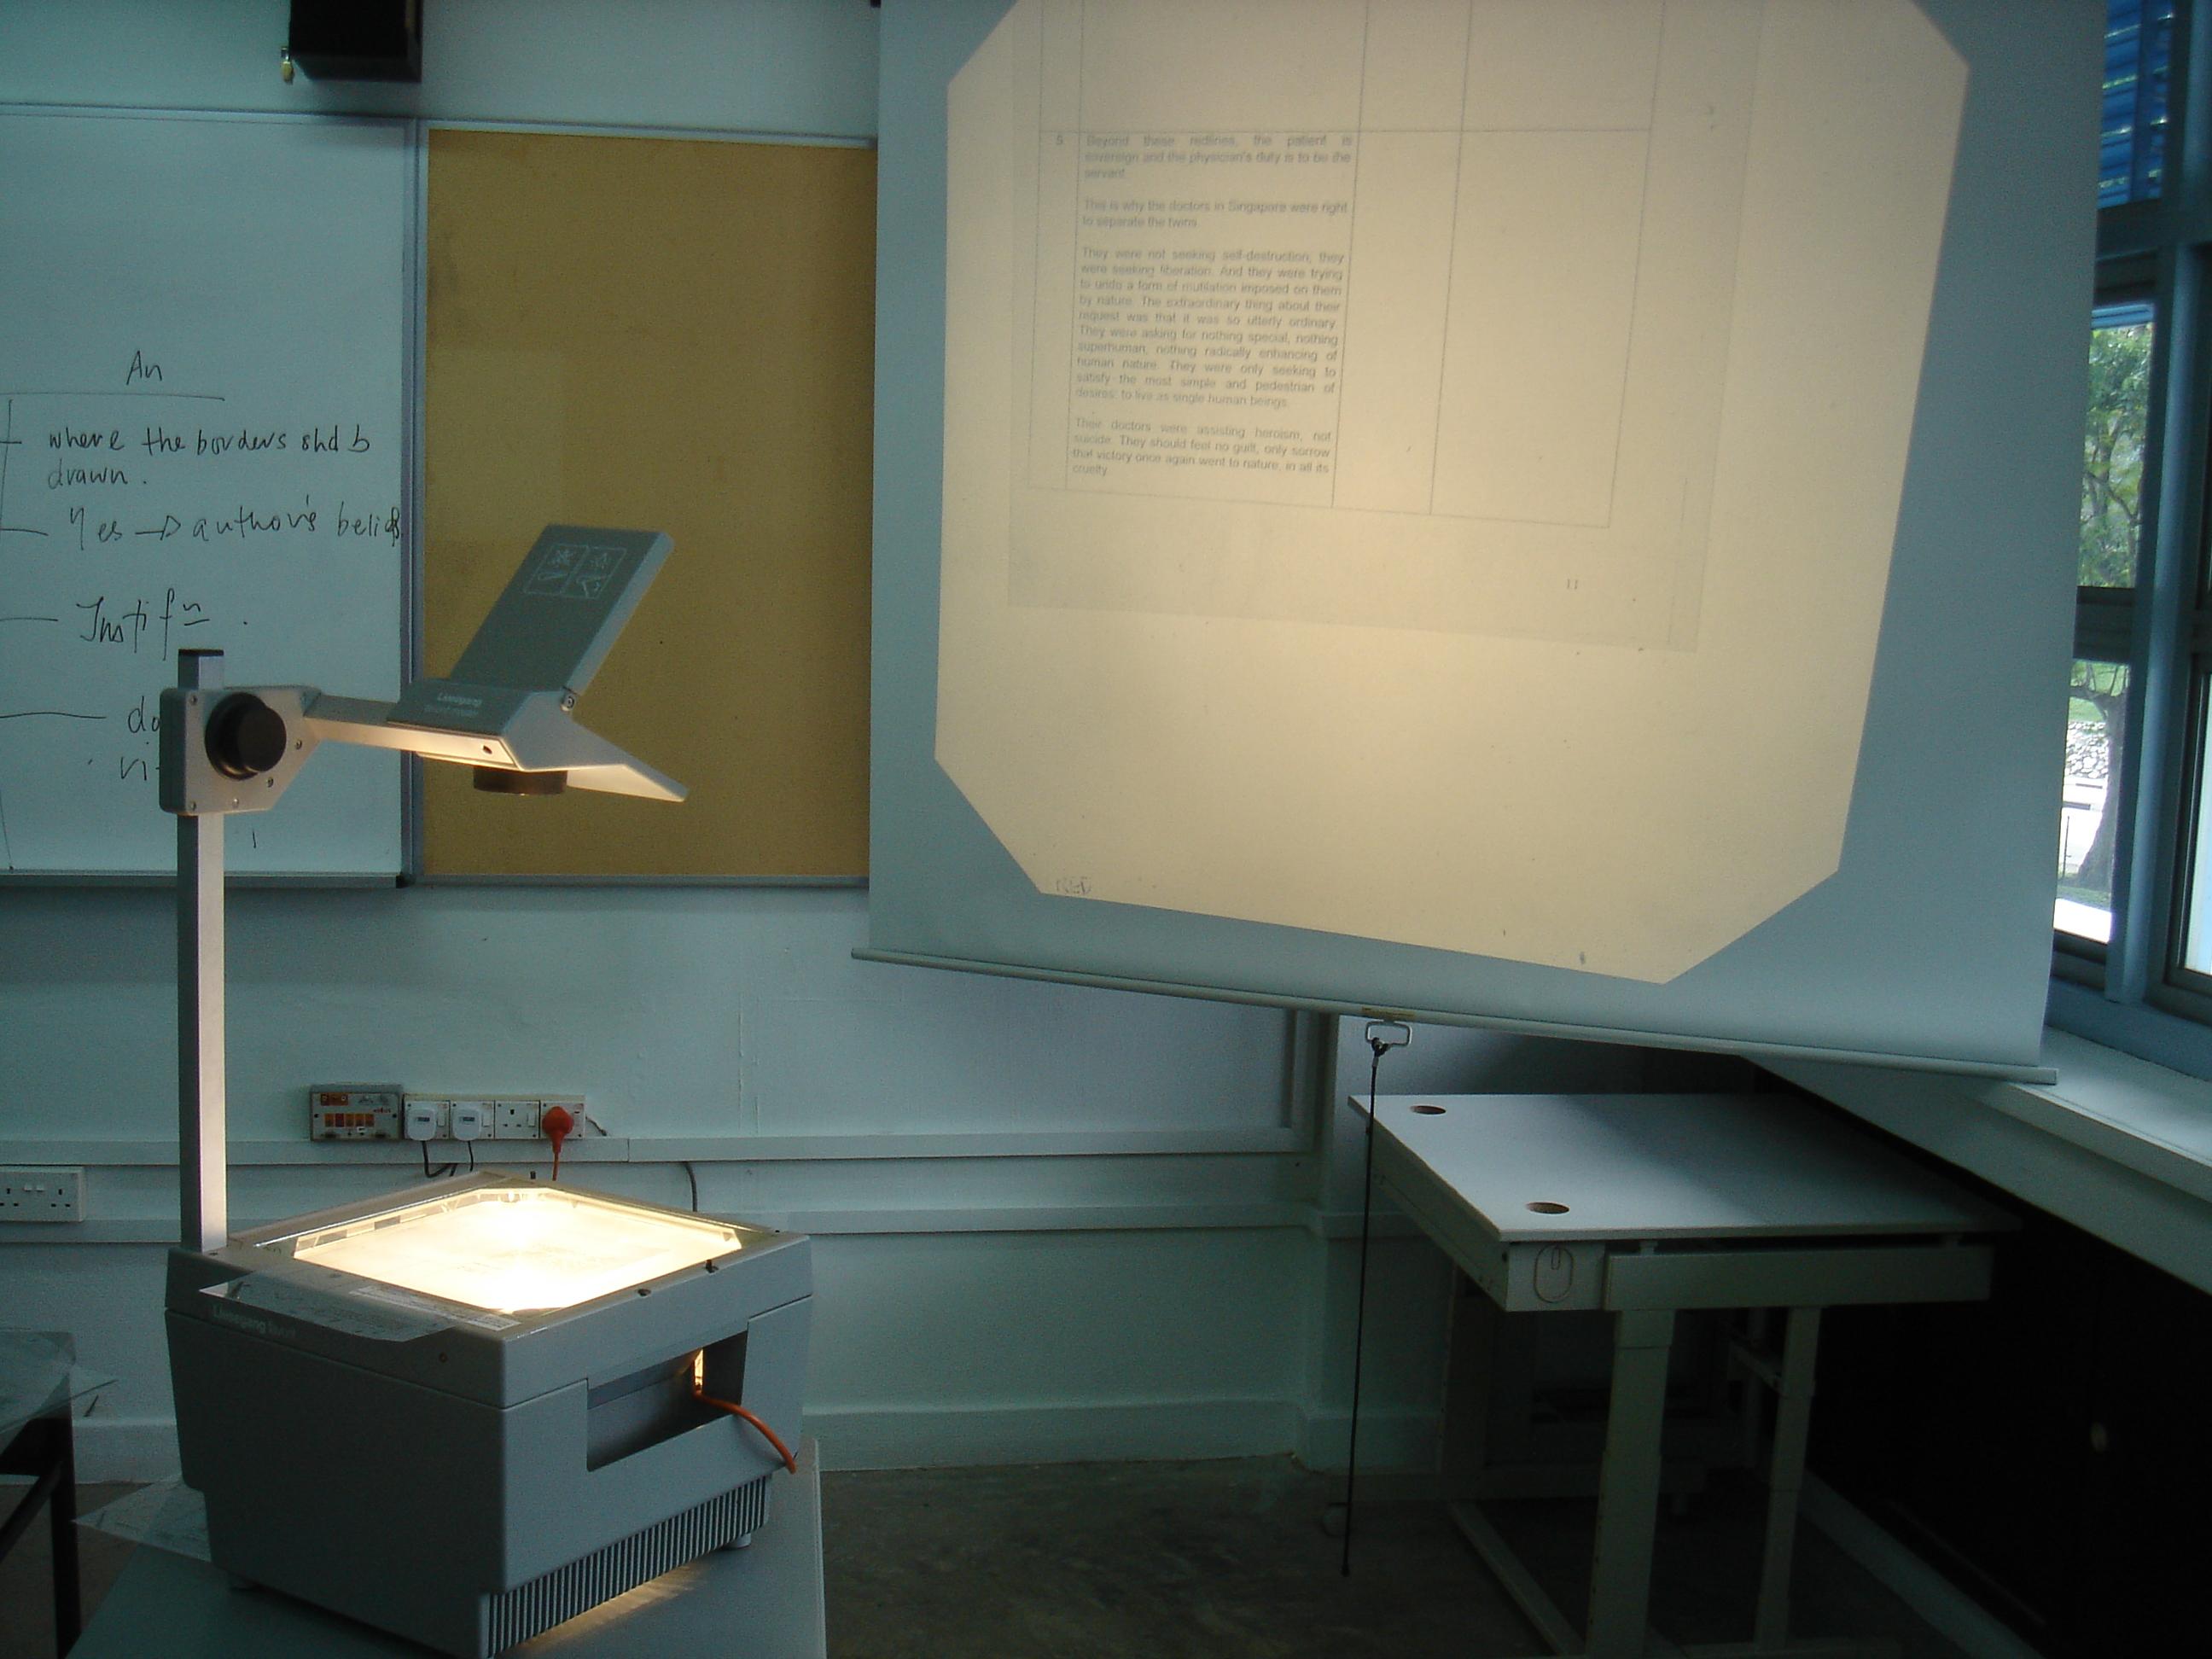 Overhead projector -- projects light through a transparent sheet with pictures, text, through a lense and onto a flat surface such as a wall.